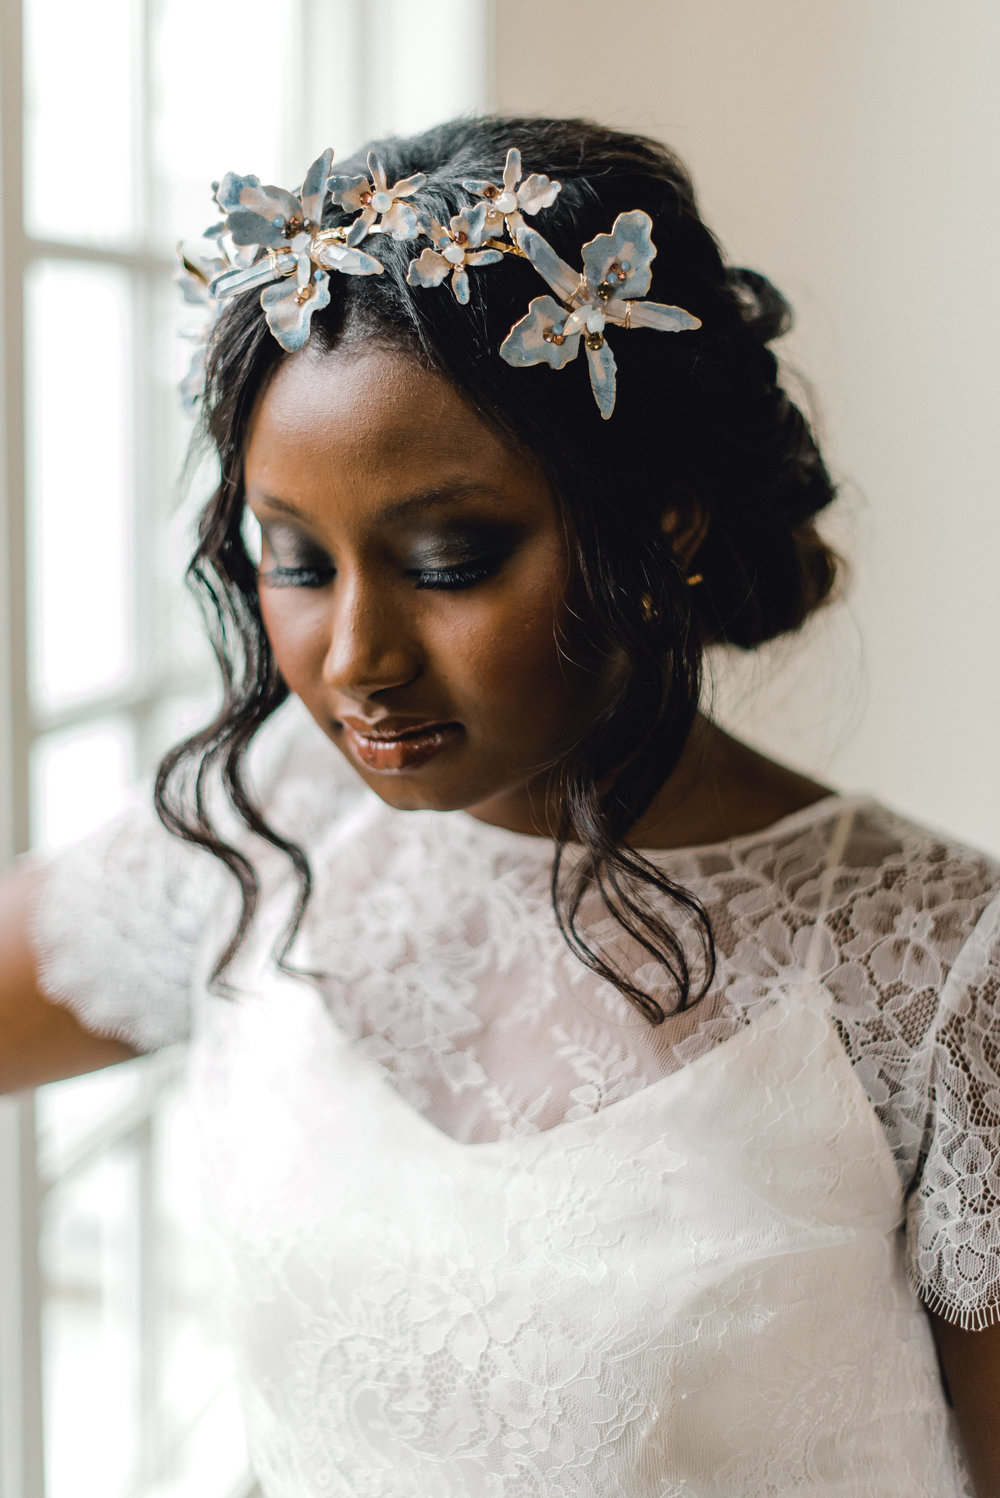 Wedding makeup and wedding hair with accessory for Pablo Neruda enchanting garden styled shoot planned by Exhale Events. Get inspired at exhale-events.com!